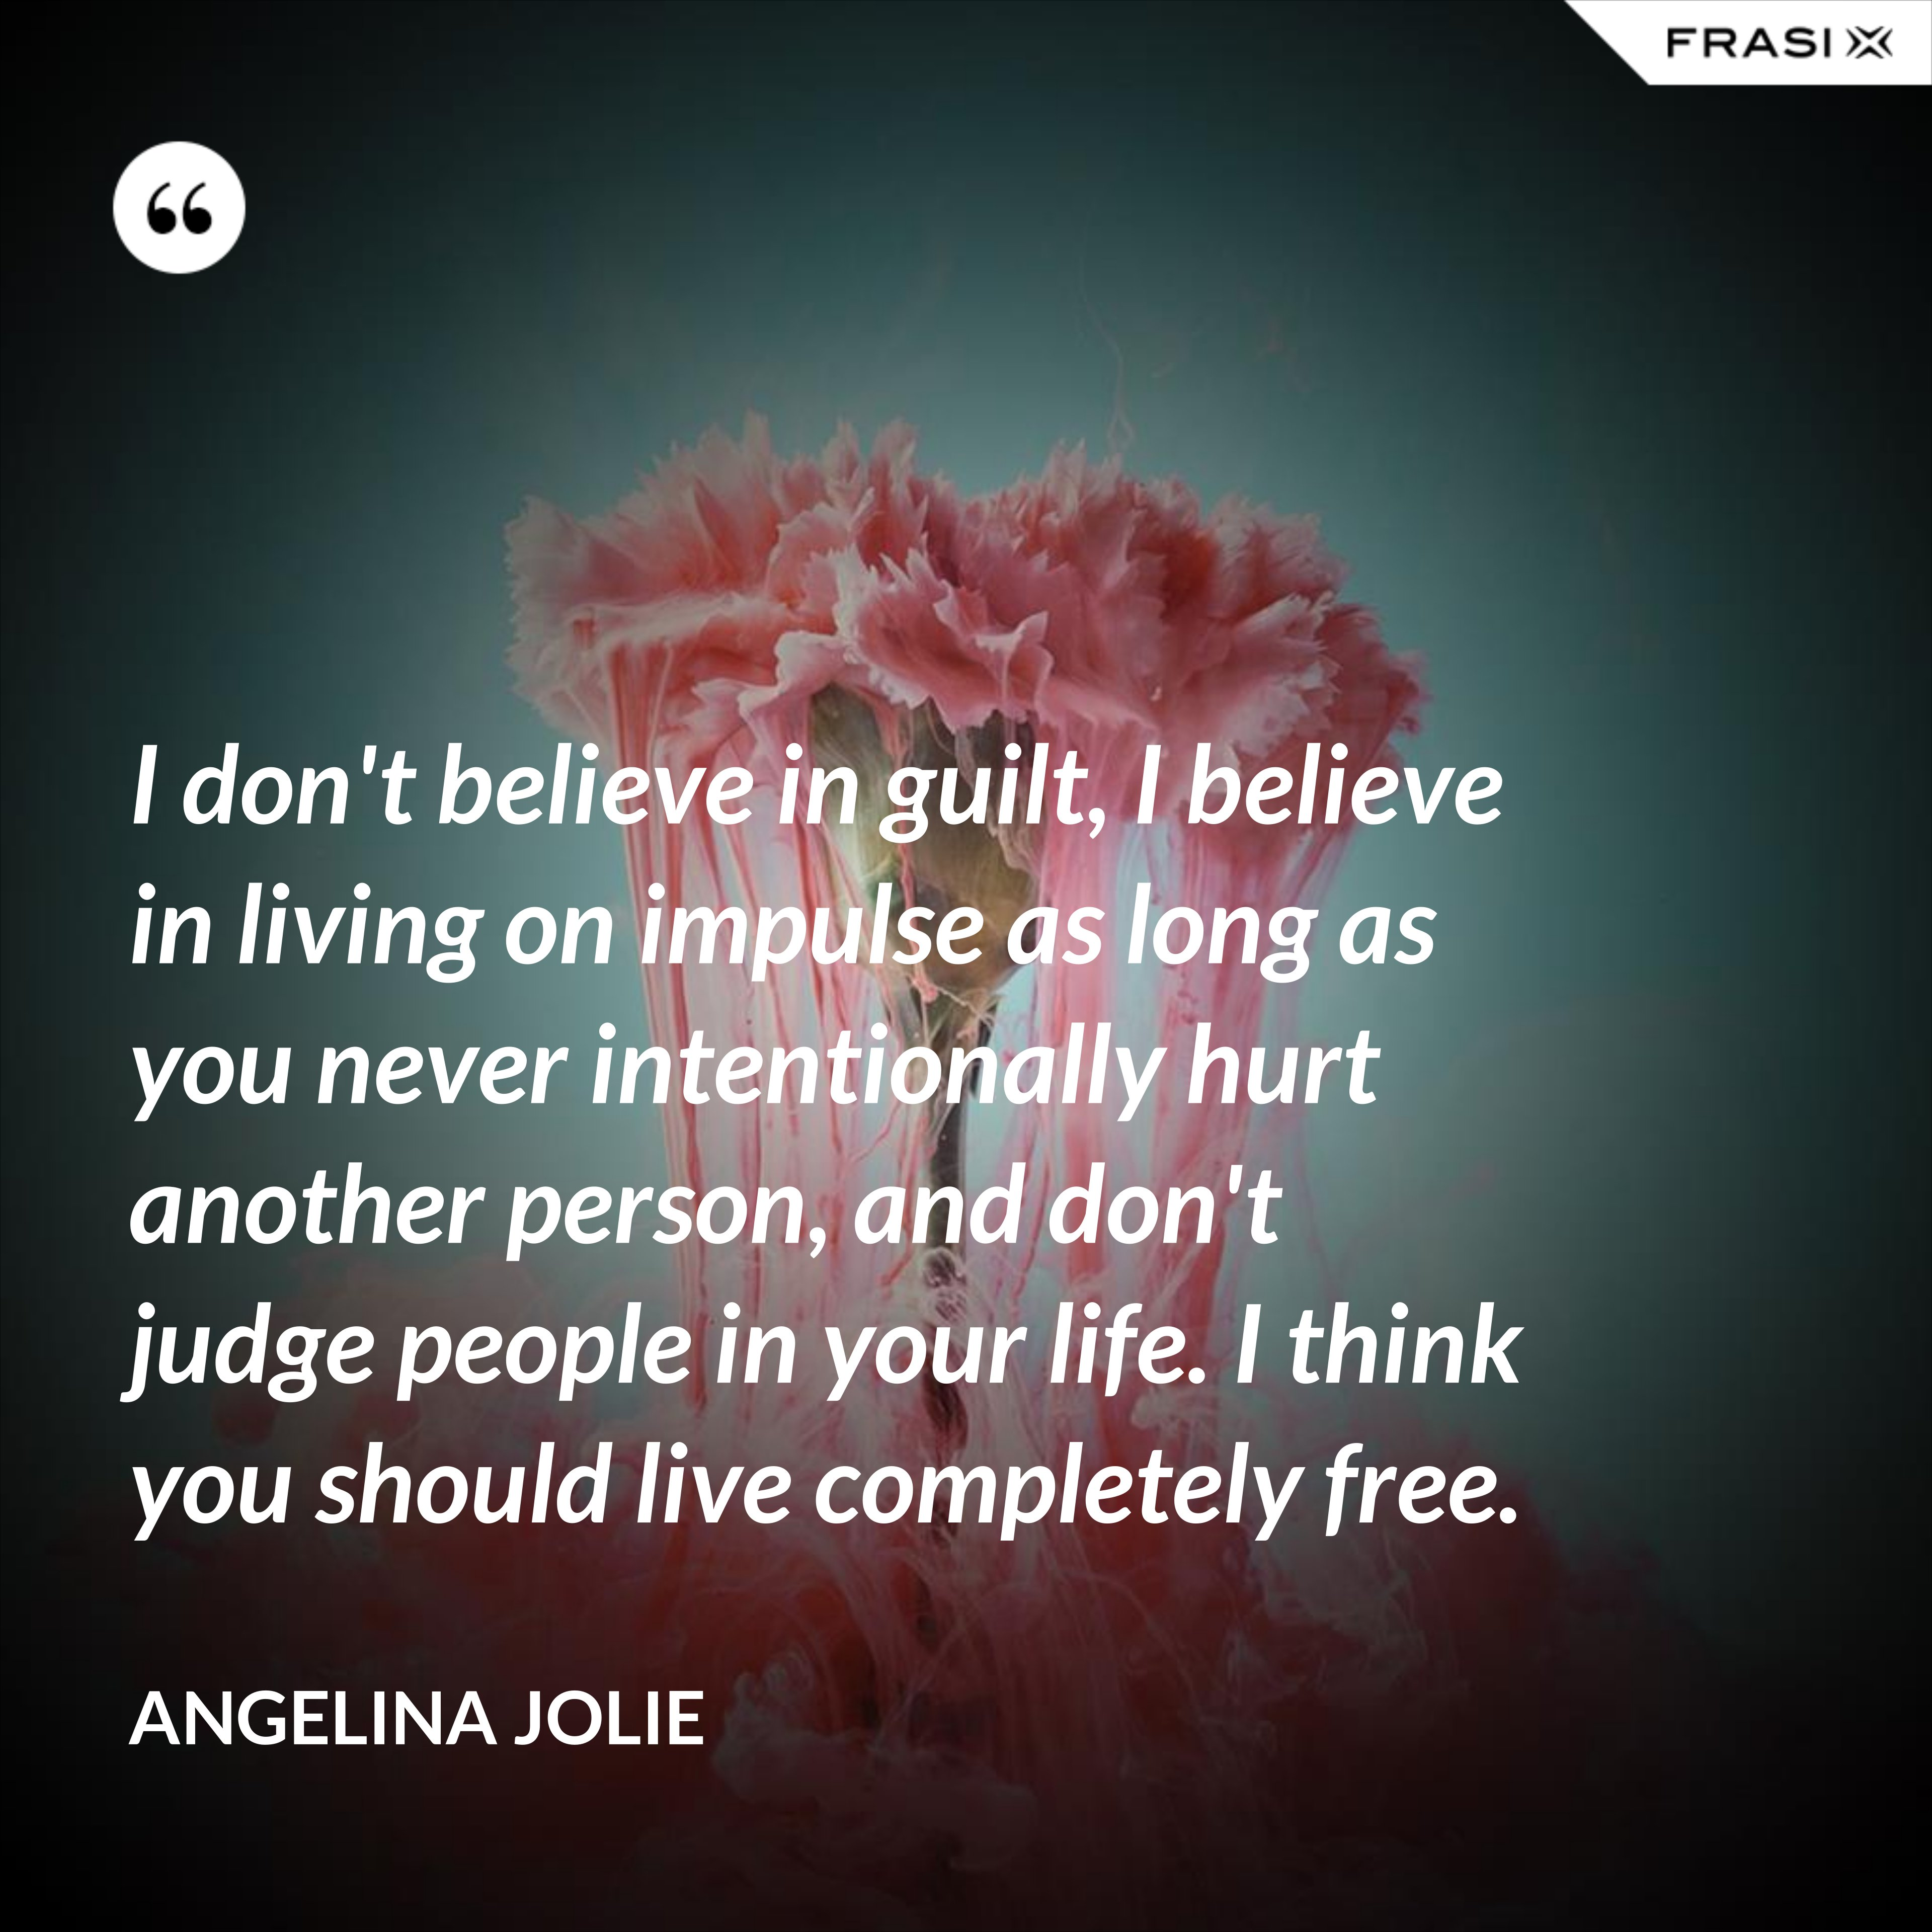 I don't believe in guilt, I believe in living on impulse as long as you never intentionally hurt another person, and don't judge people in your life. I think you should live completely free. - Angelina Jolie